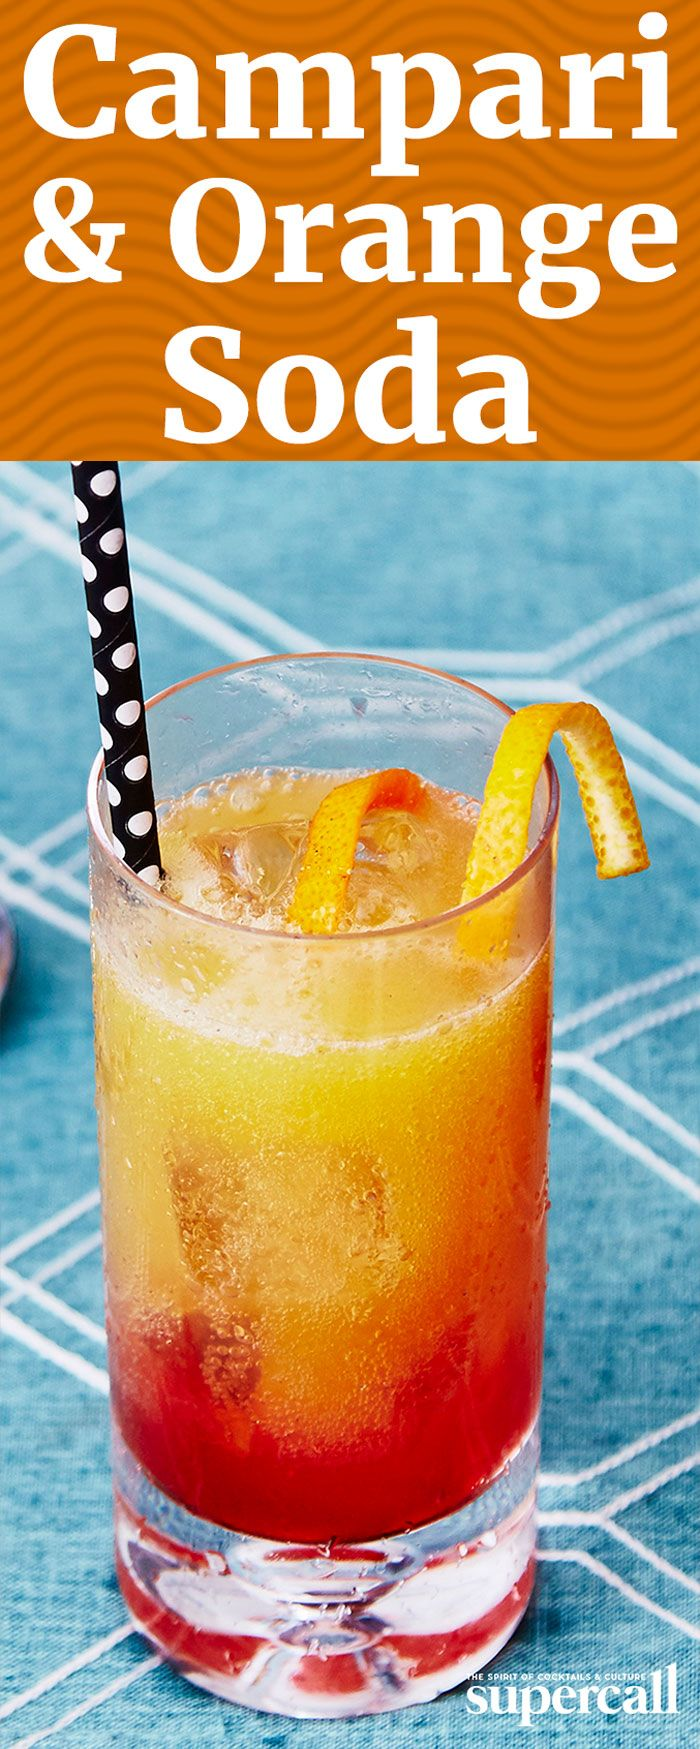 A simple mix of Campari and soda is an easy, delicious refresher—but Campari and orange soda is even better. Simple as it is, the combo has just as much depth of flavor as more complex cocktails. There's a blast of bright citrus on the first sip, with layers of bitterness and frothy orange sweetness, finishing with Campari's signature herbal kick.